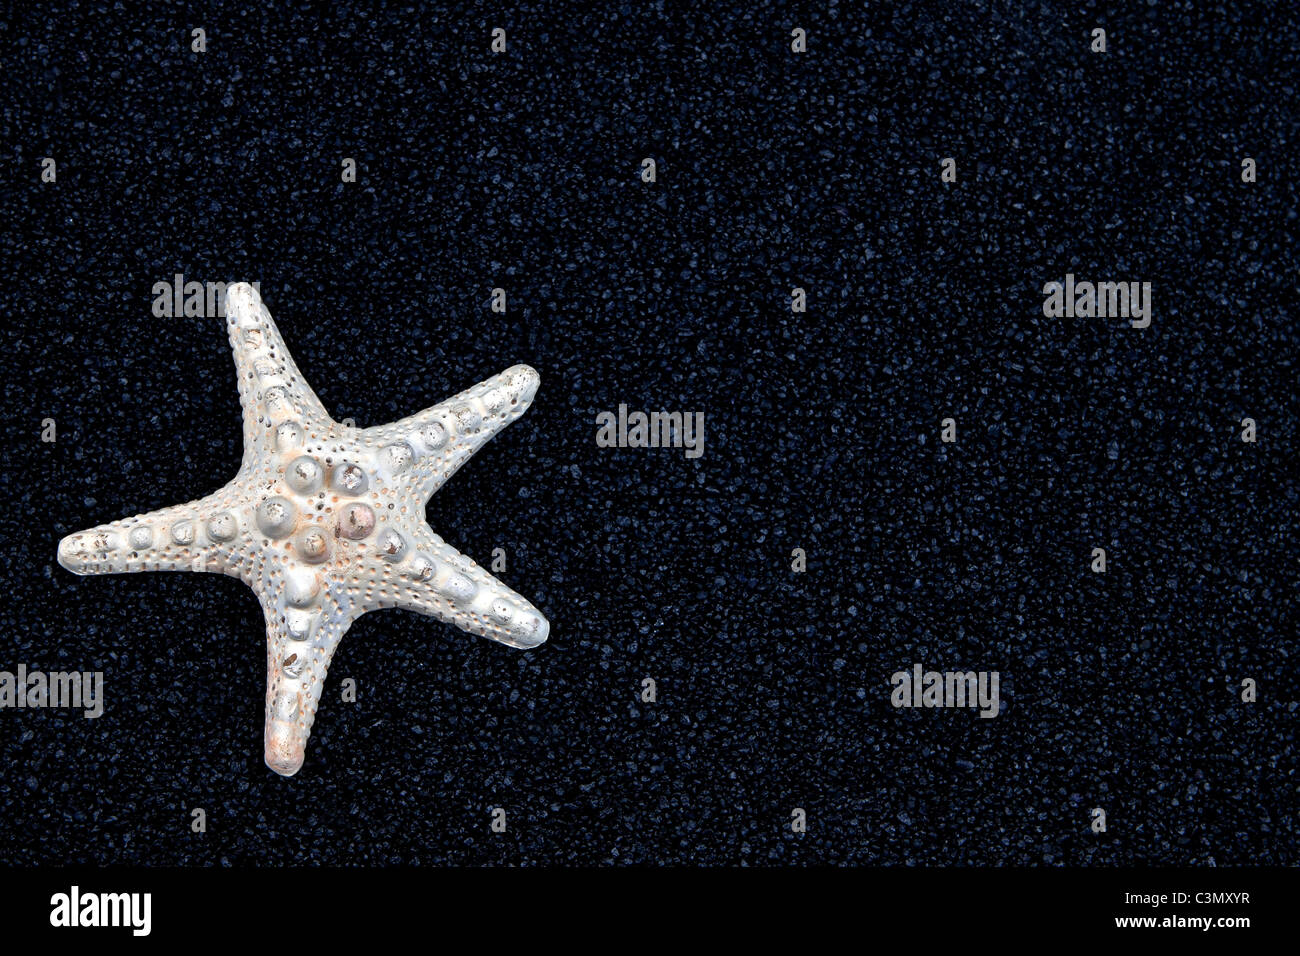 a white starfish on black sand - Stock Image